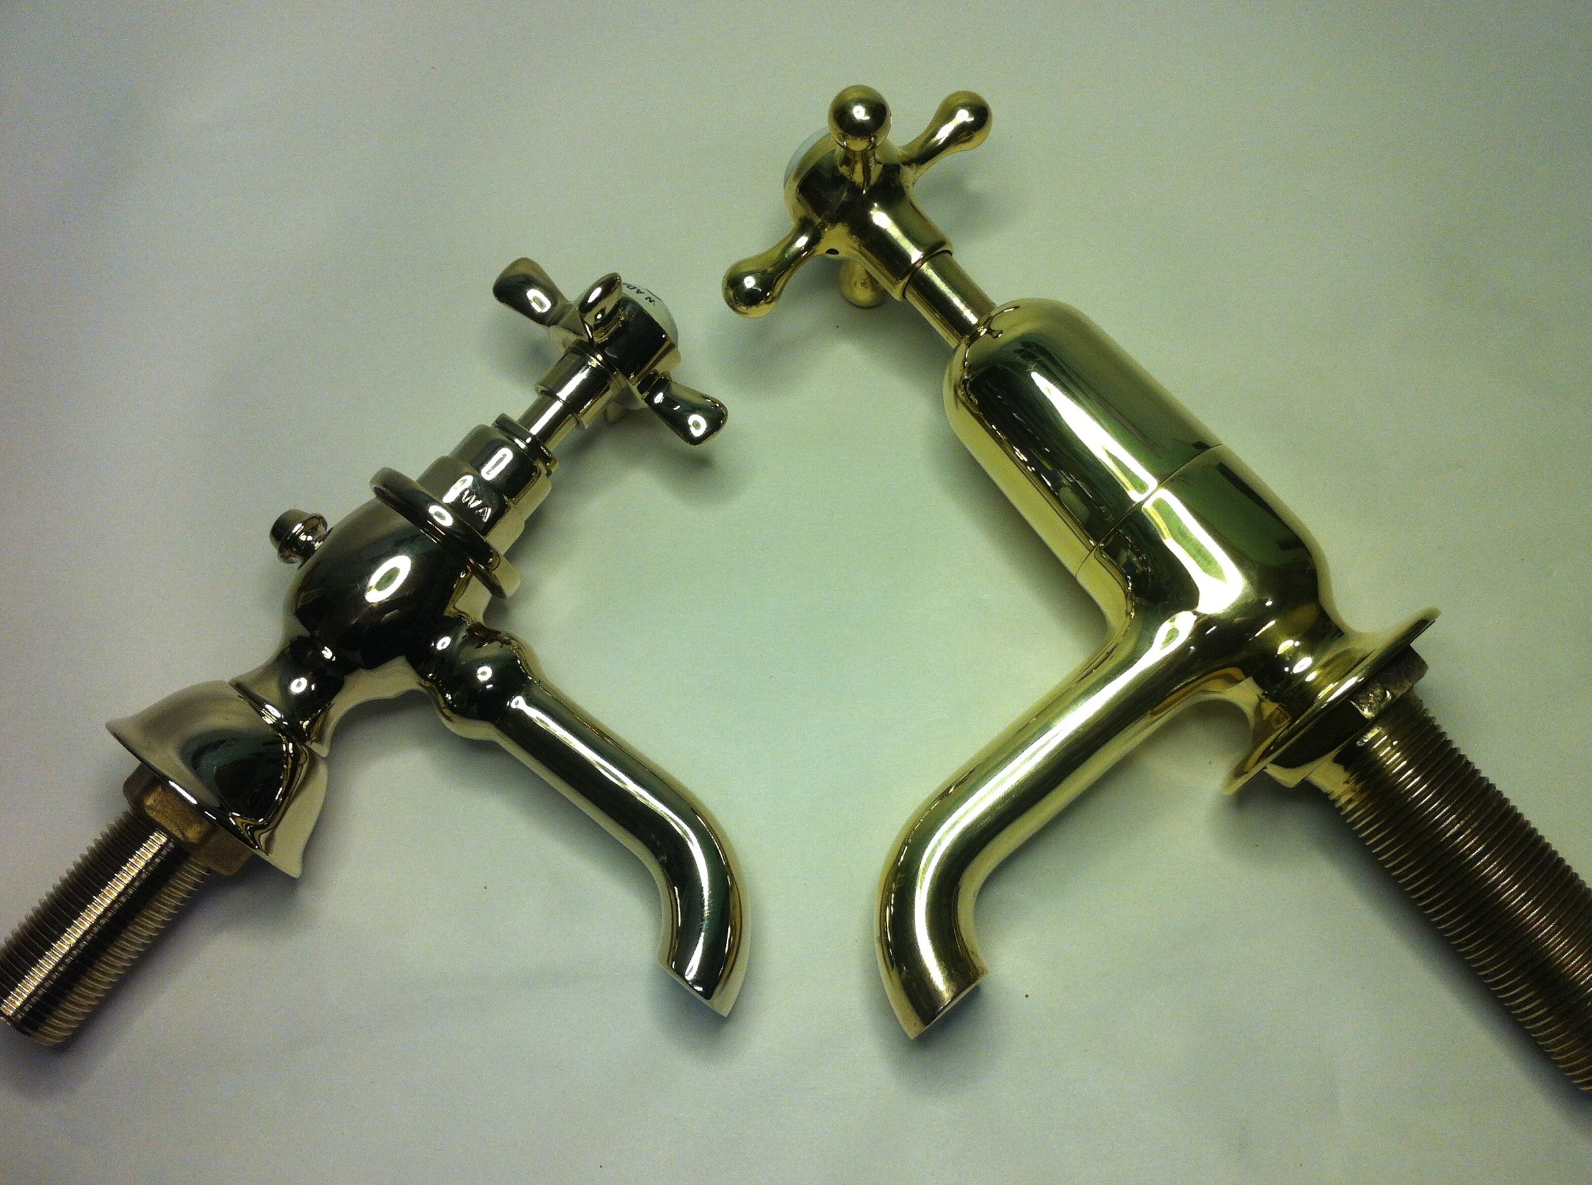 Polished Brass or Gold Plated?